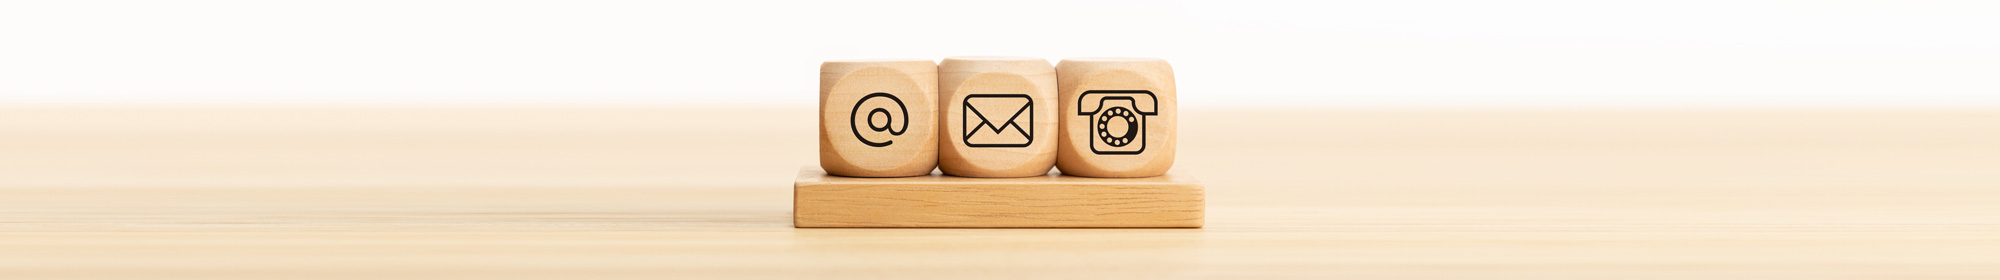 Contact us wooden blocks with email, mail and telephone icons